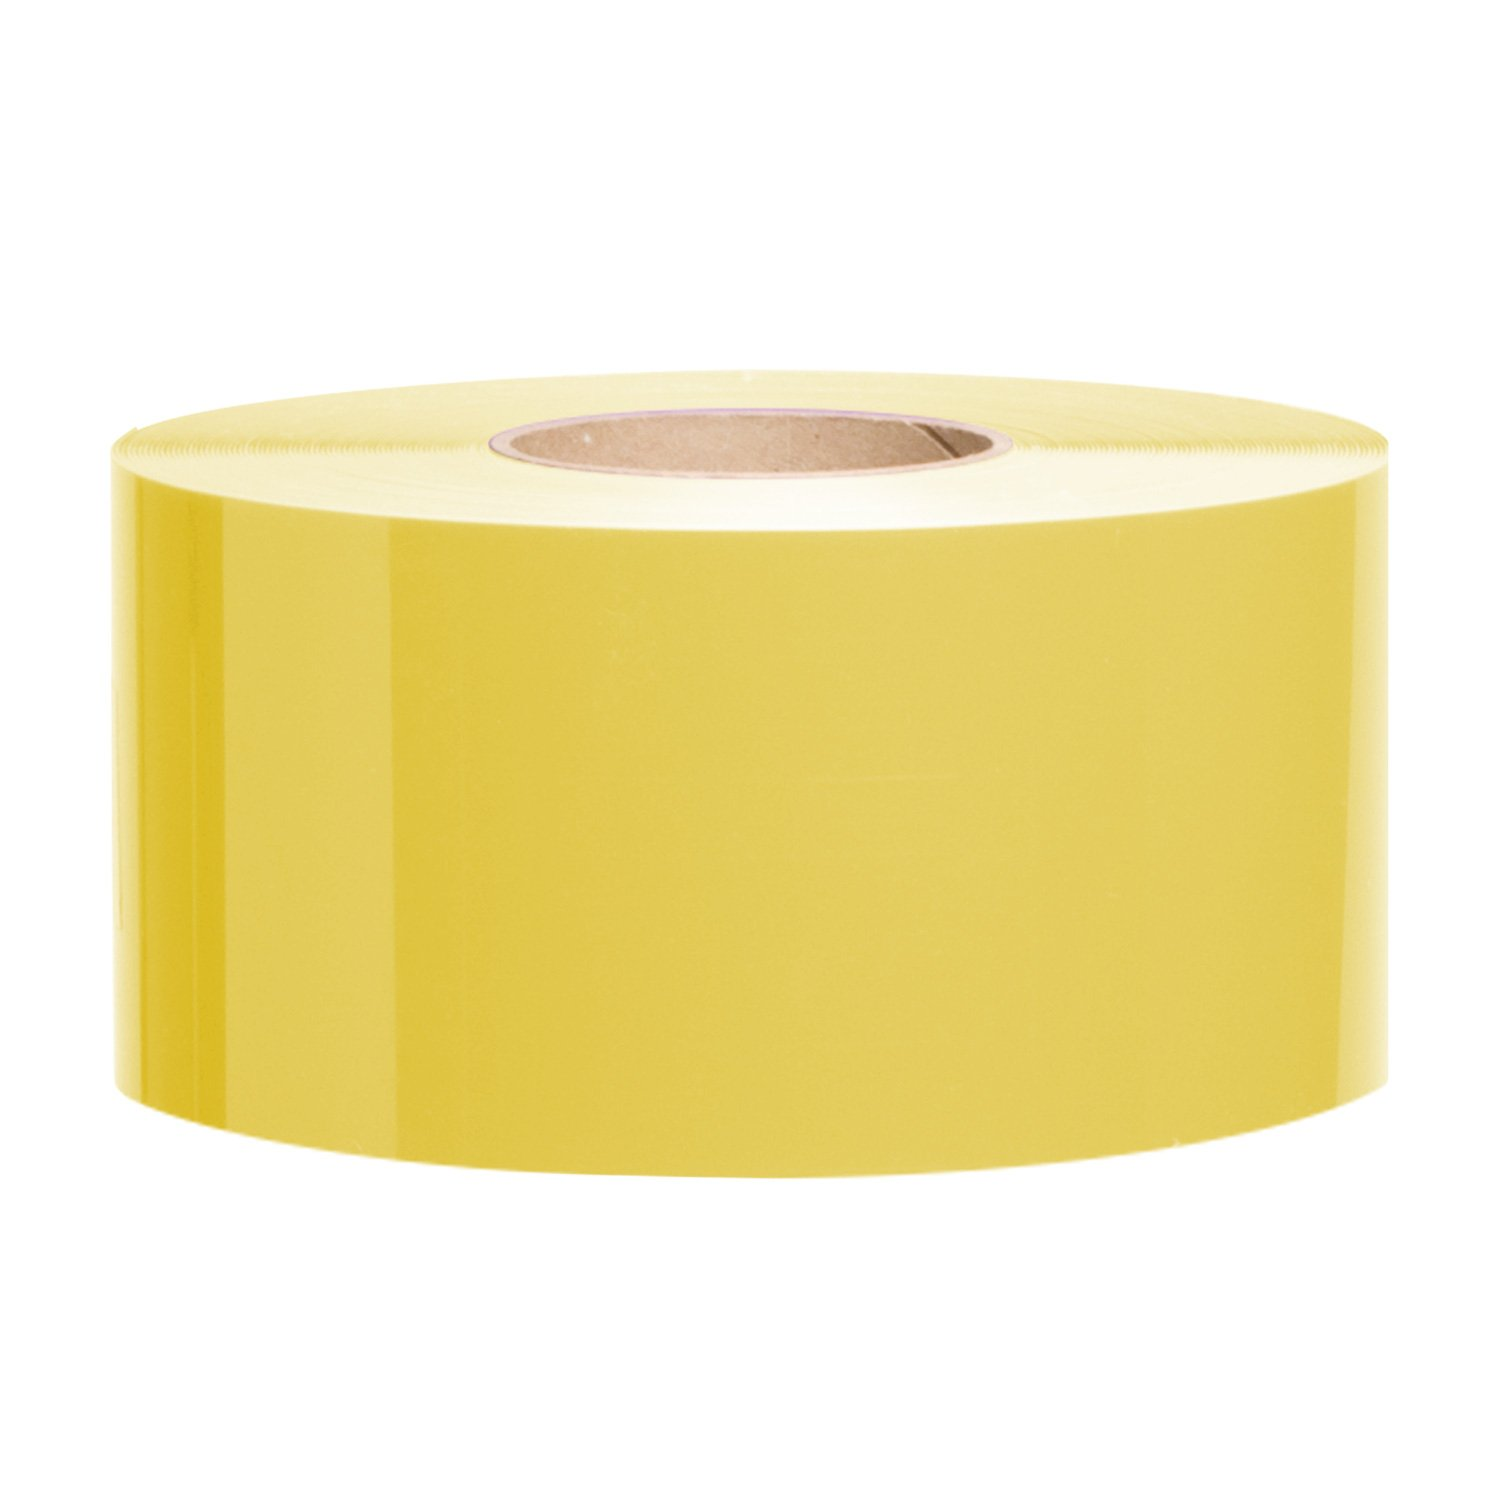 DuraStripe X-treme Yellow Floor Marking Tape for Fork Lift Areas, 2-Inch x 100 Foot Roll